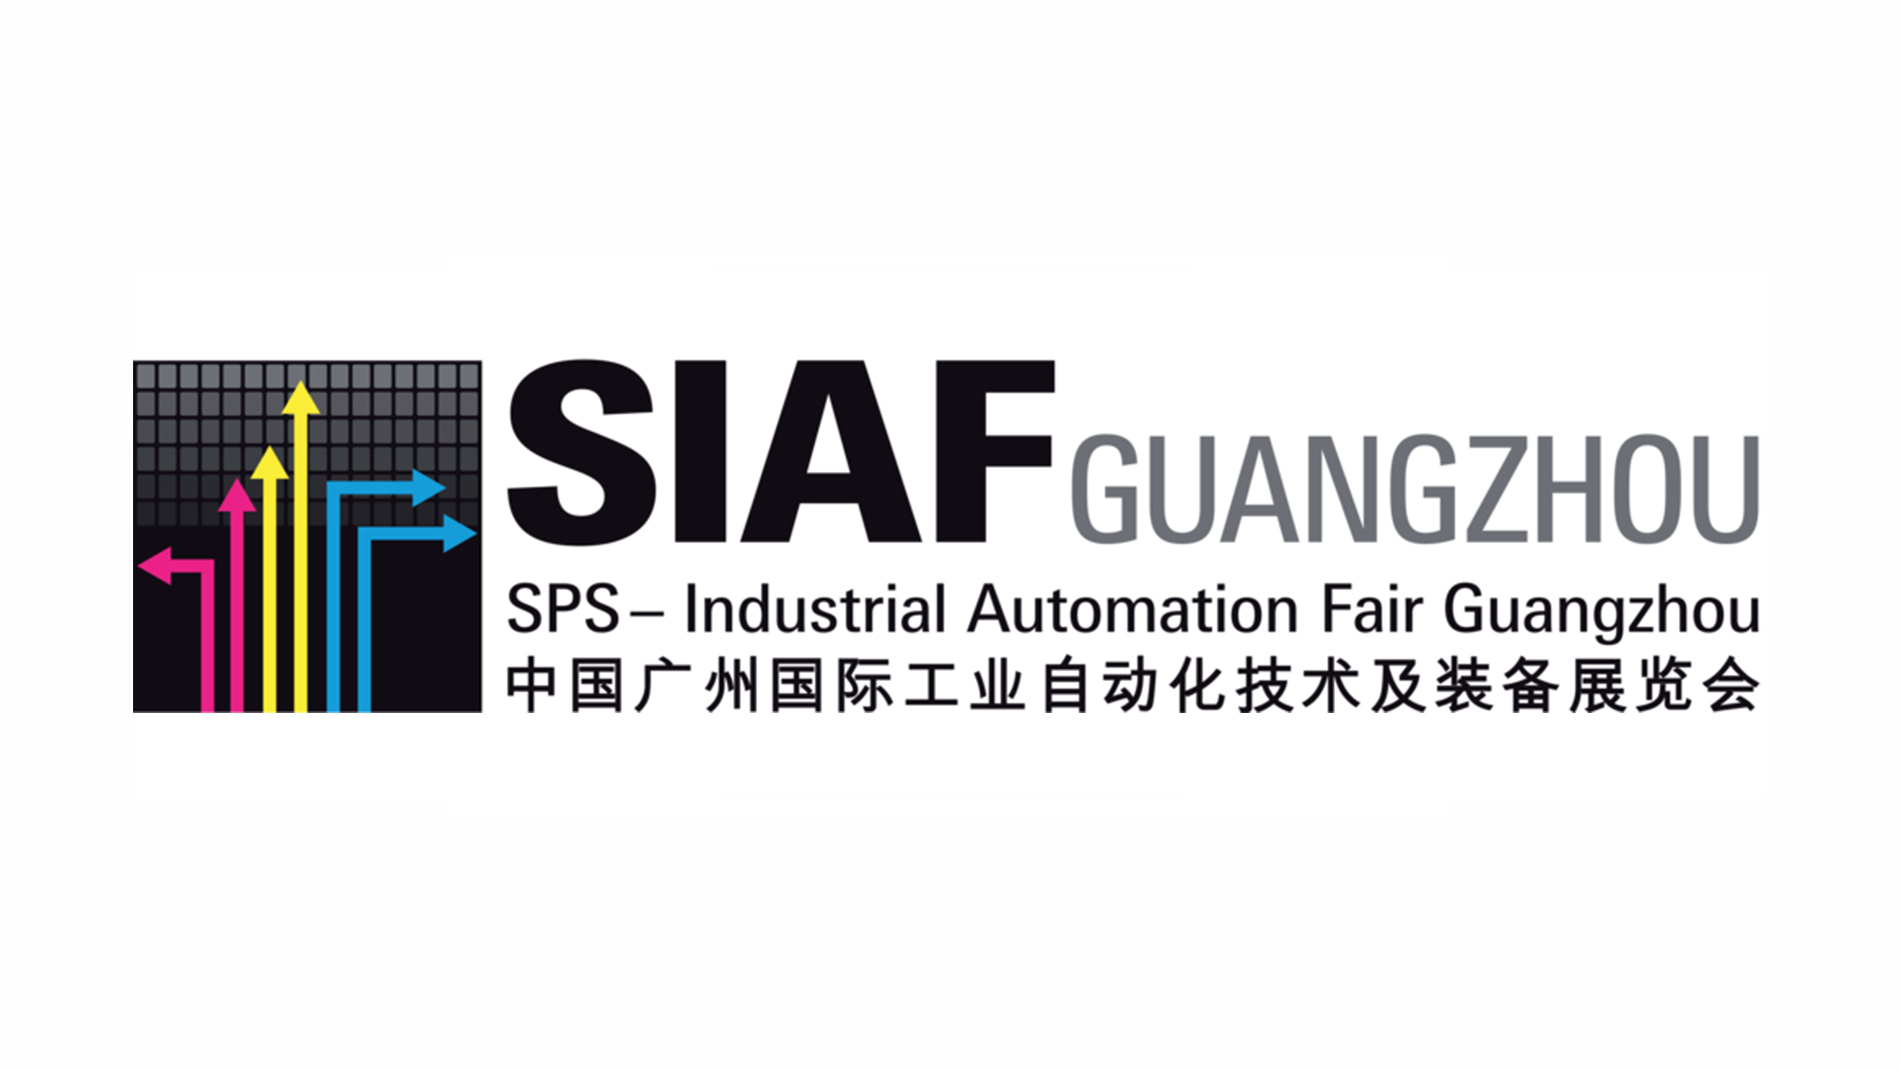 SPS Industrial Automation Fair Guangzhou